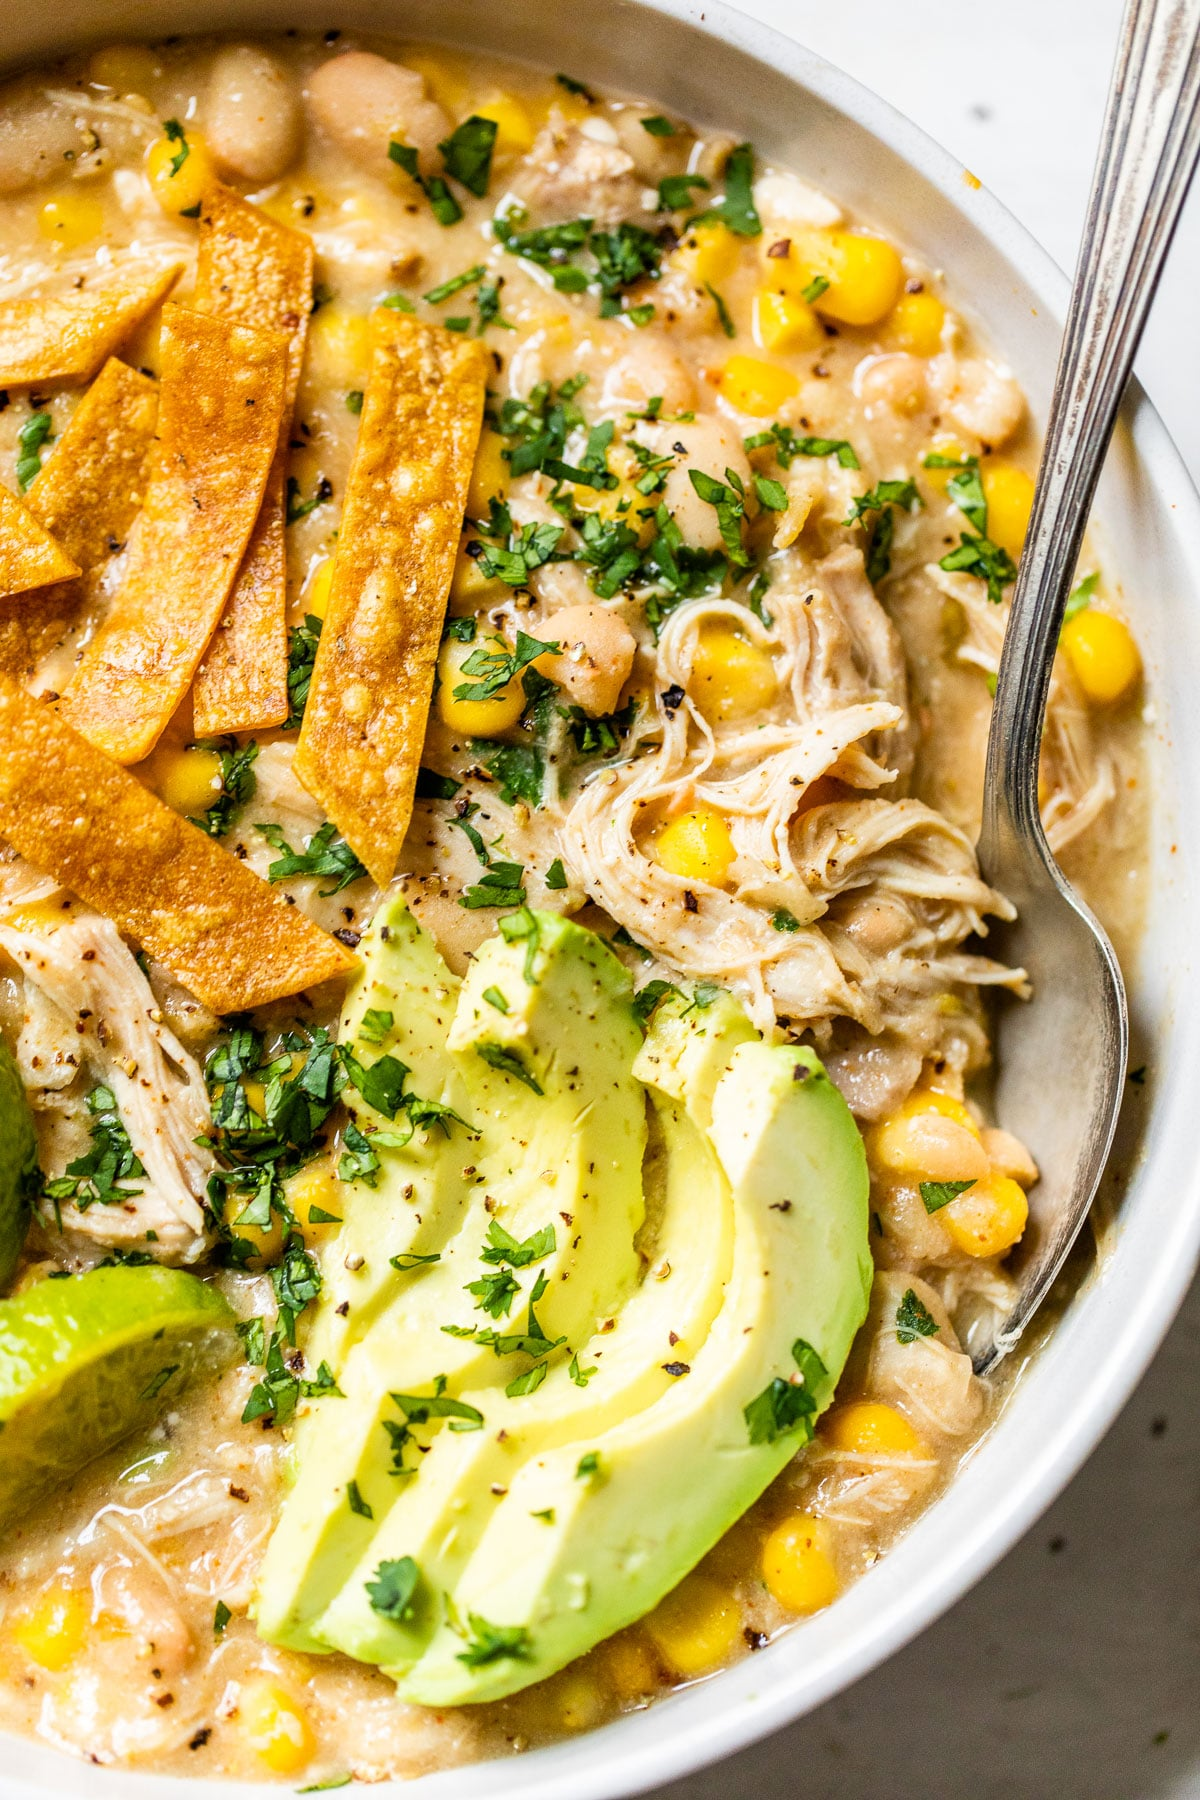 close up of a bowl of soup with shredded chicken, avocado slices and tortilla strips